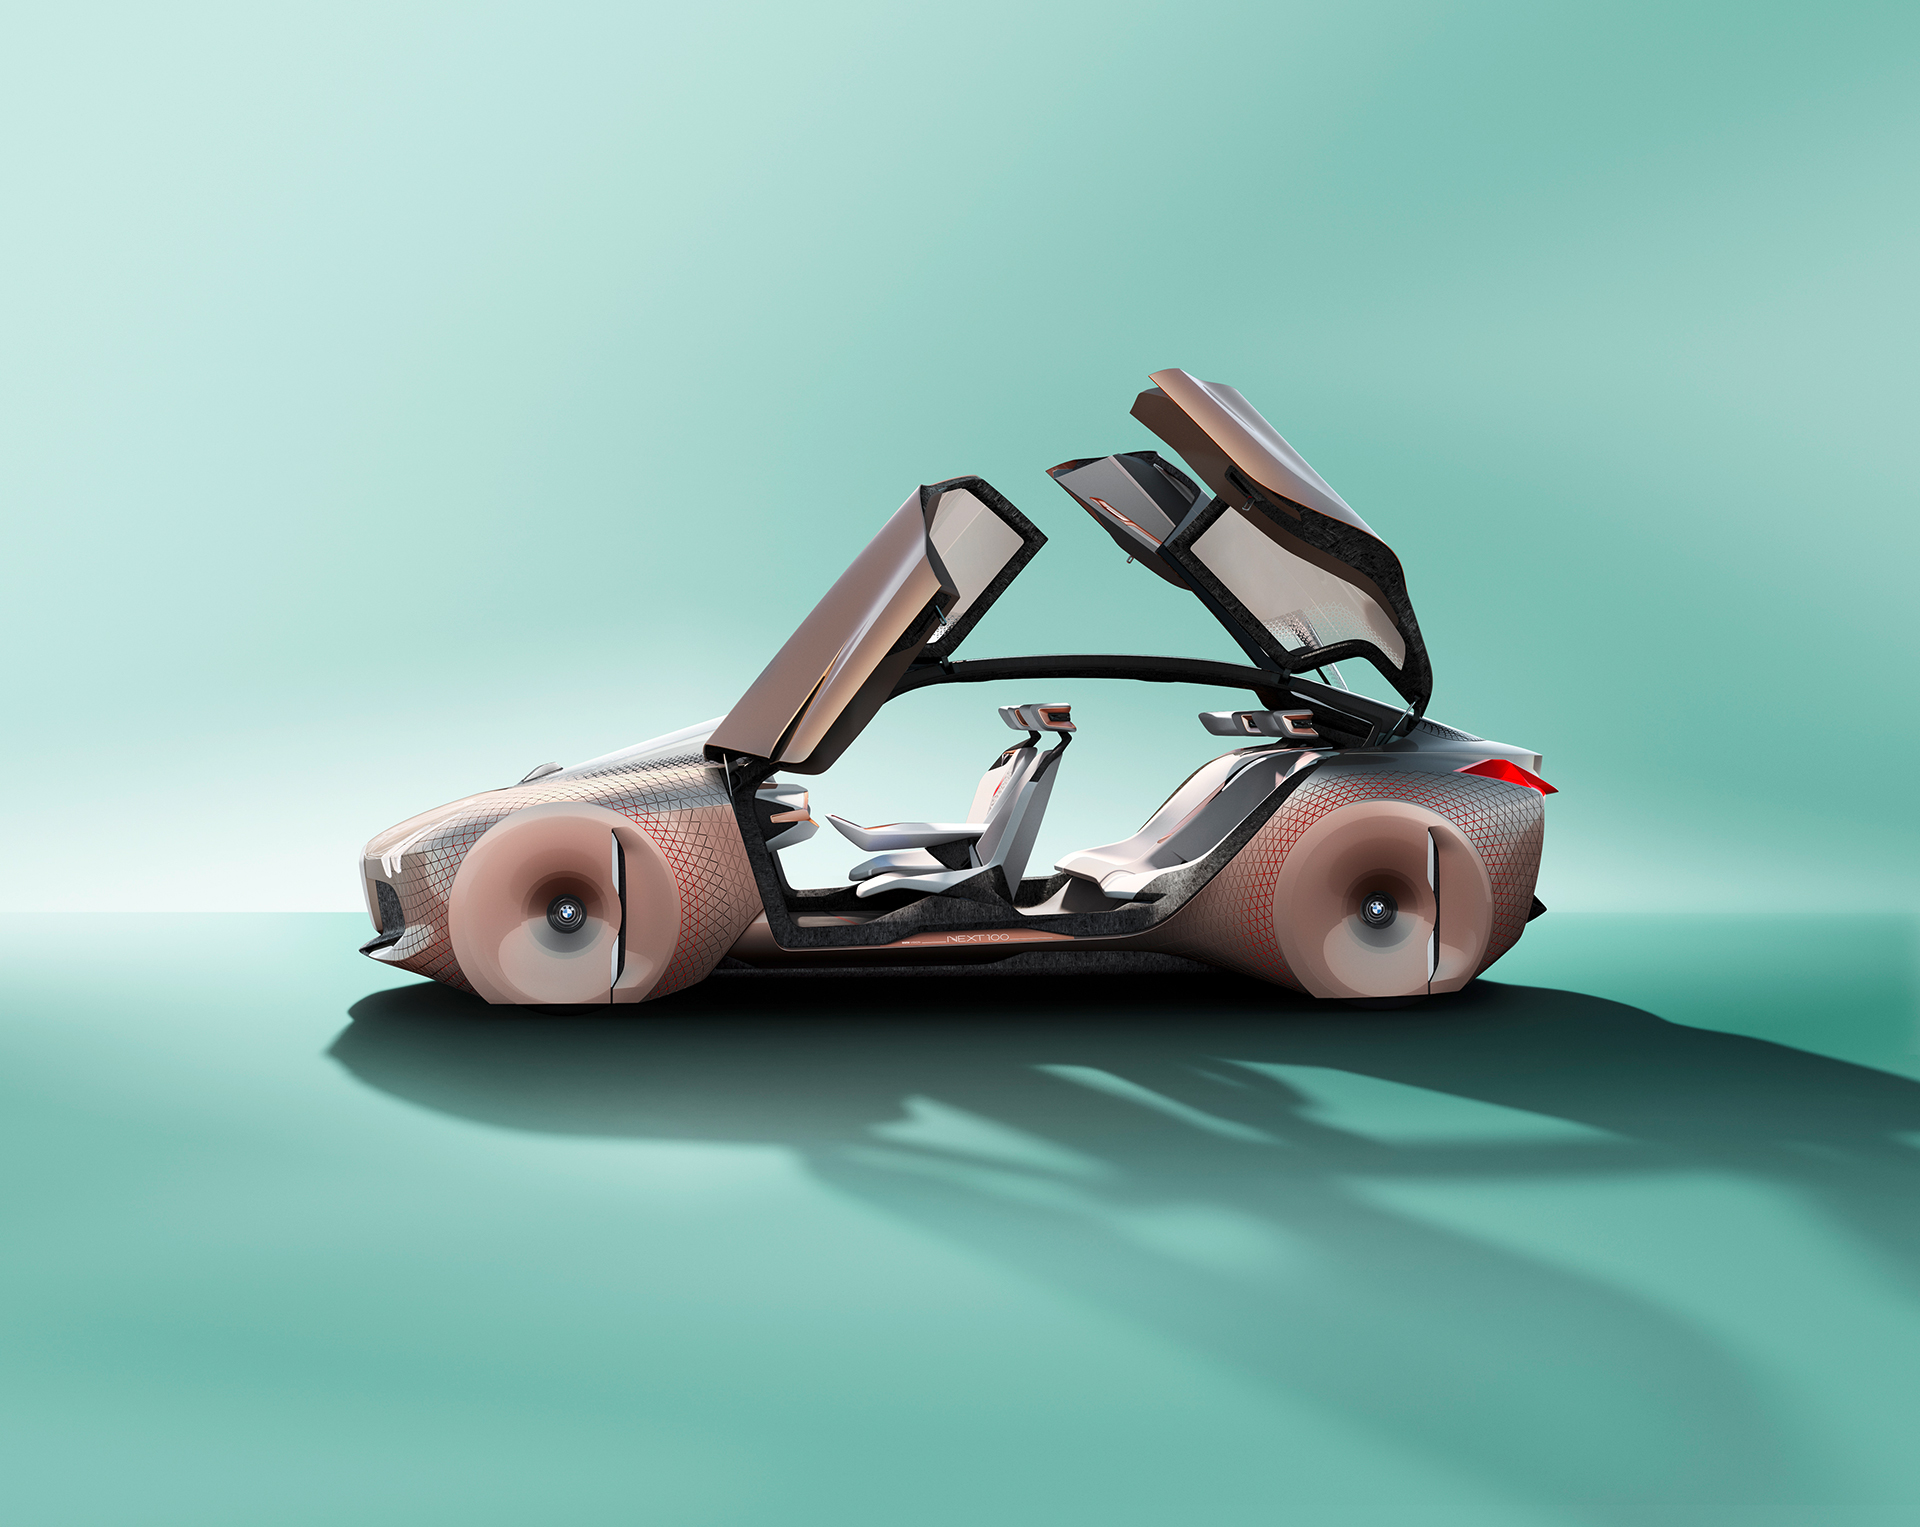 BMW VISION NEXT 100 - side-face / profil - open / portes ouvertes